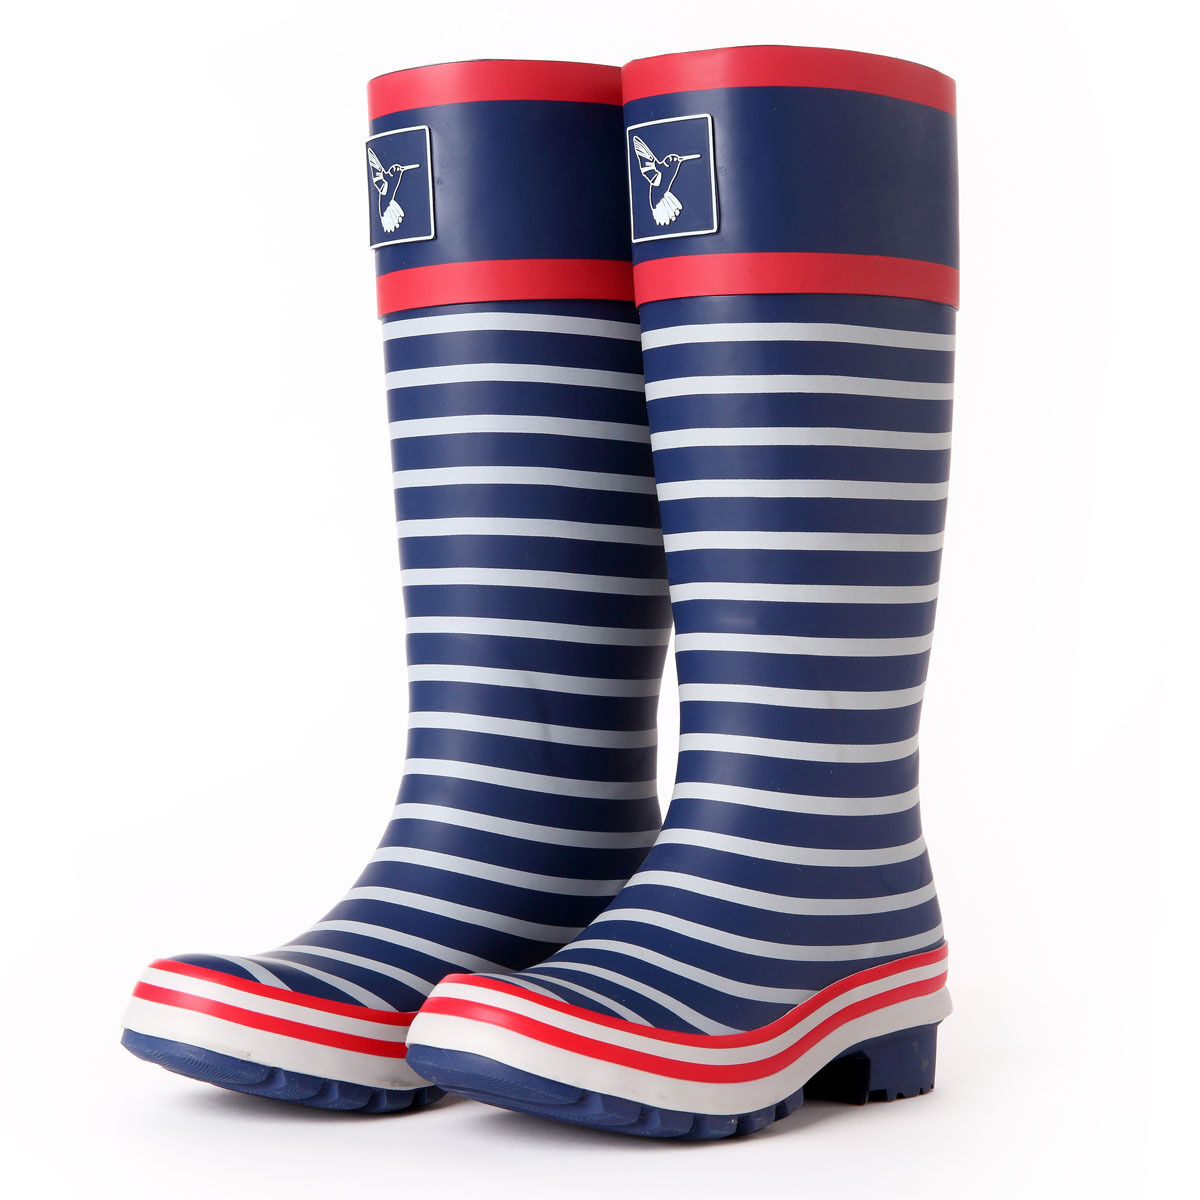 UK Brand Ladies Rain boots Wellies Fashion Stripes Knee High Waterproof Boots